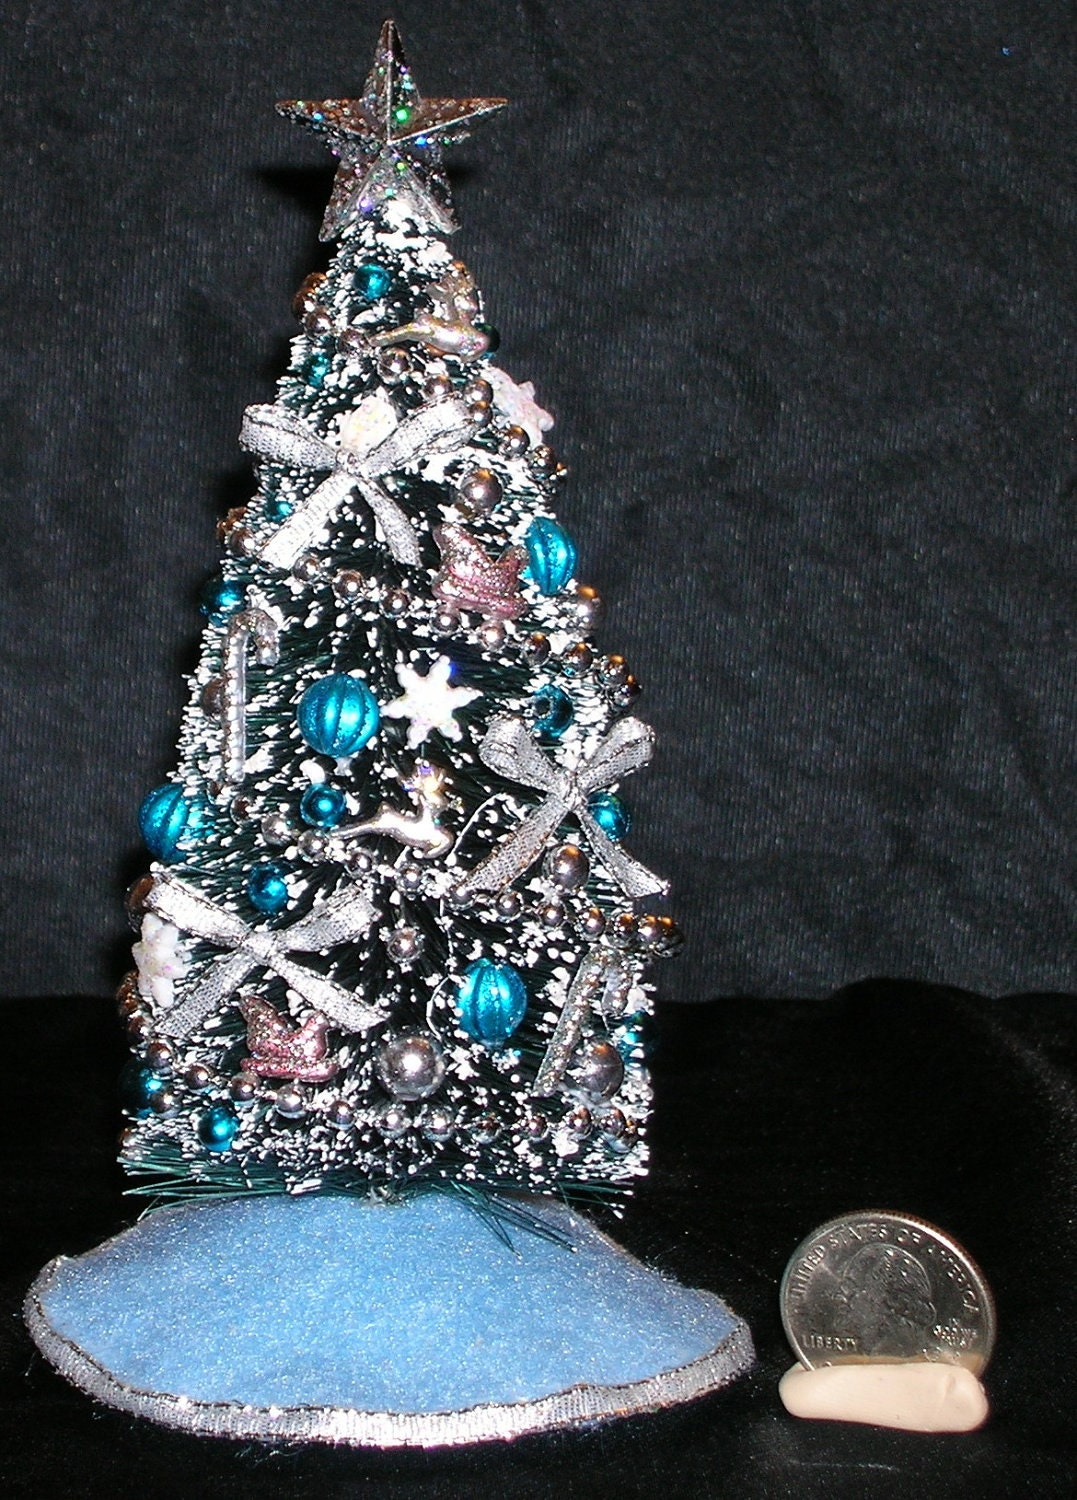 Six Inch Miniature Christmas Tree With Blue Decorations